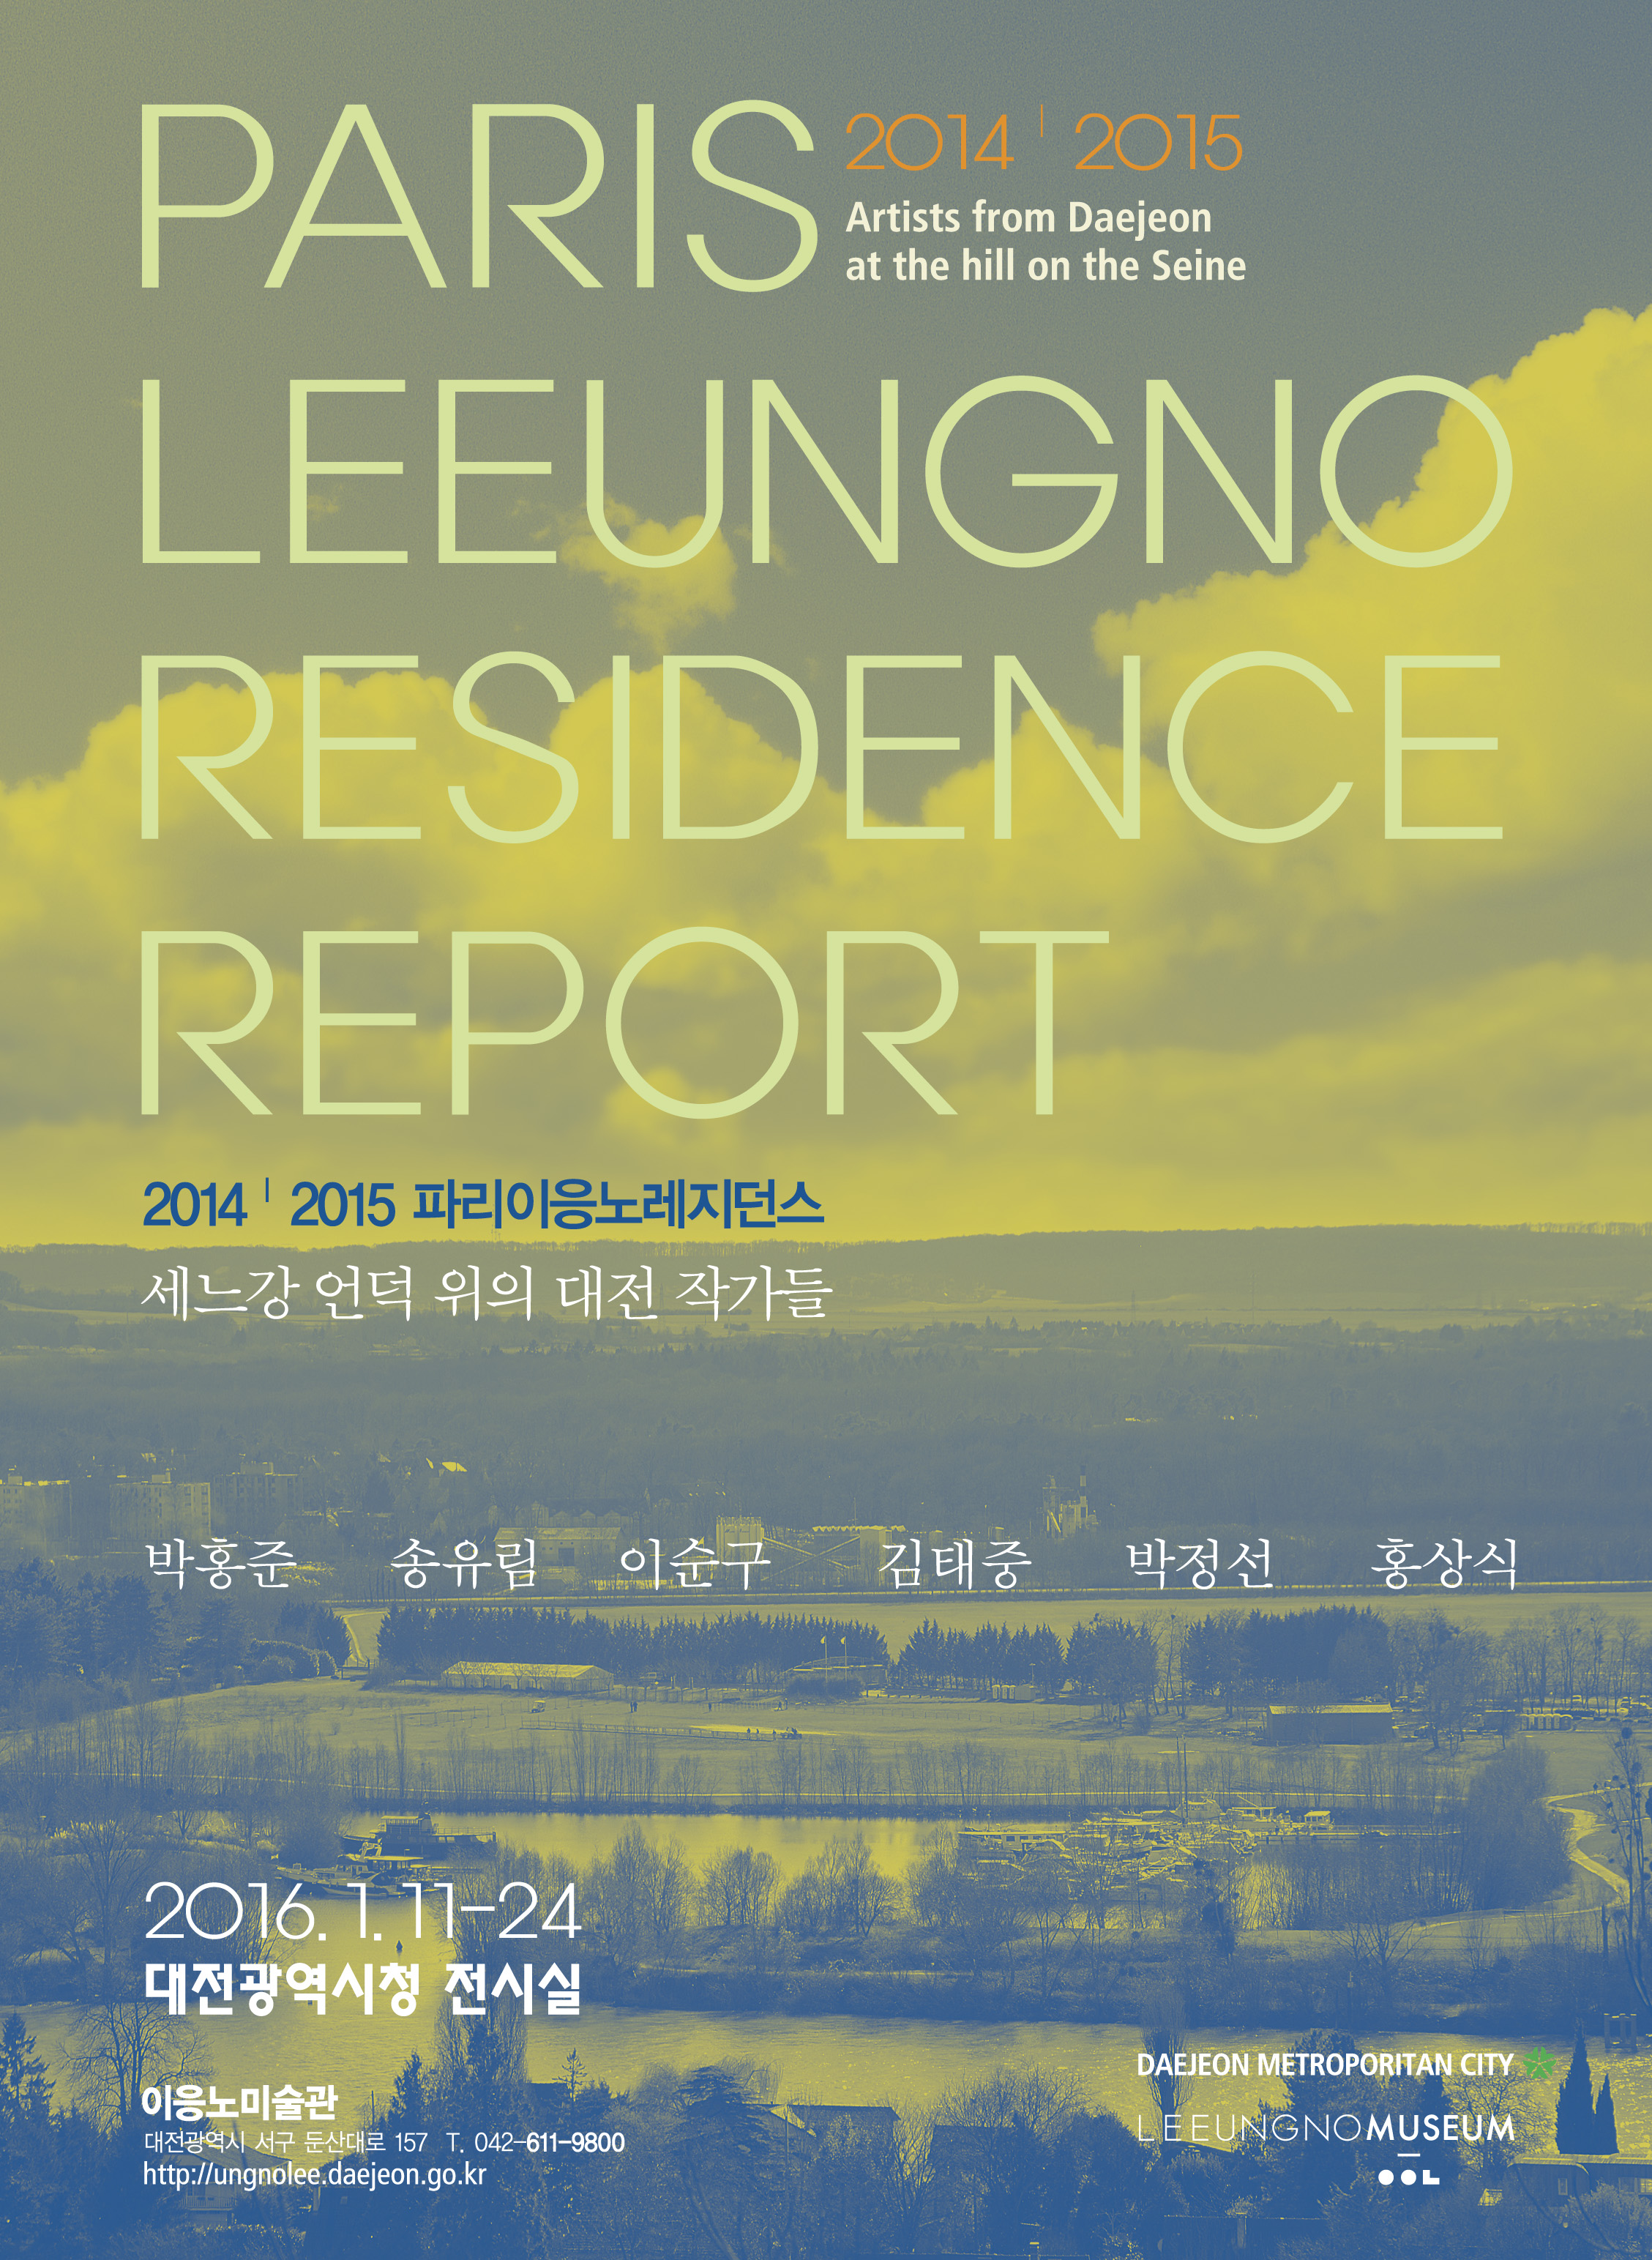 2016 Paris Lee Ungno Residence Report